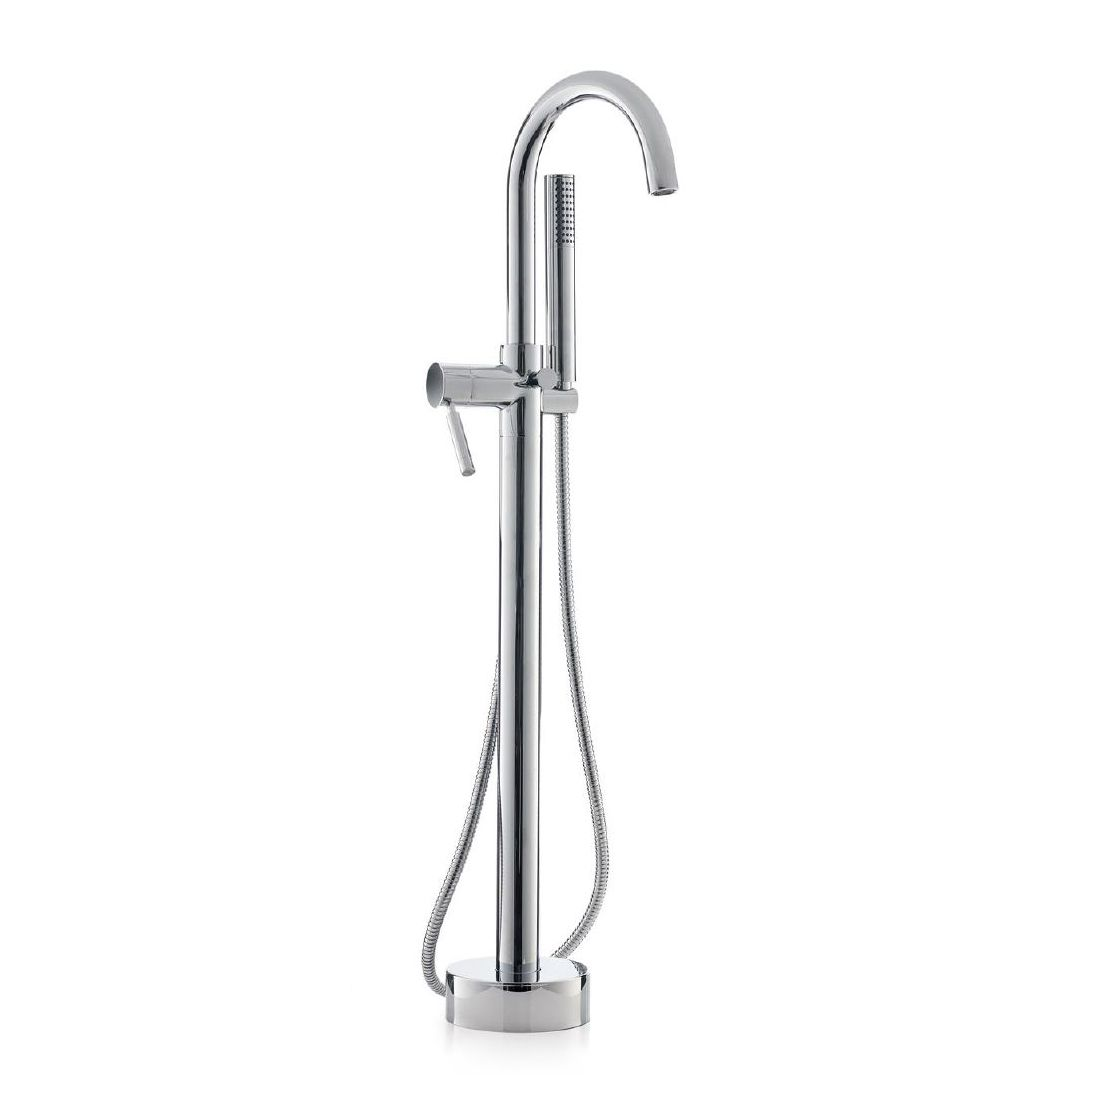 Cheviot 7550 Ch Contemporary Free Standing Bathtub Filler With